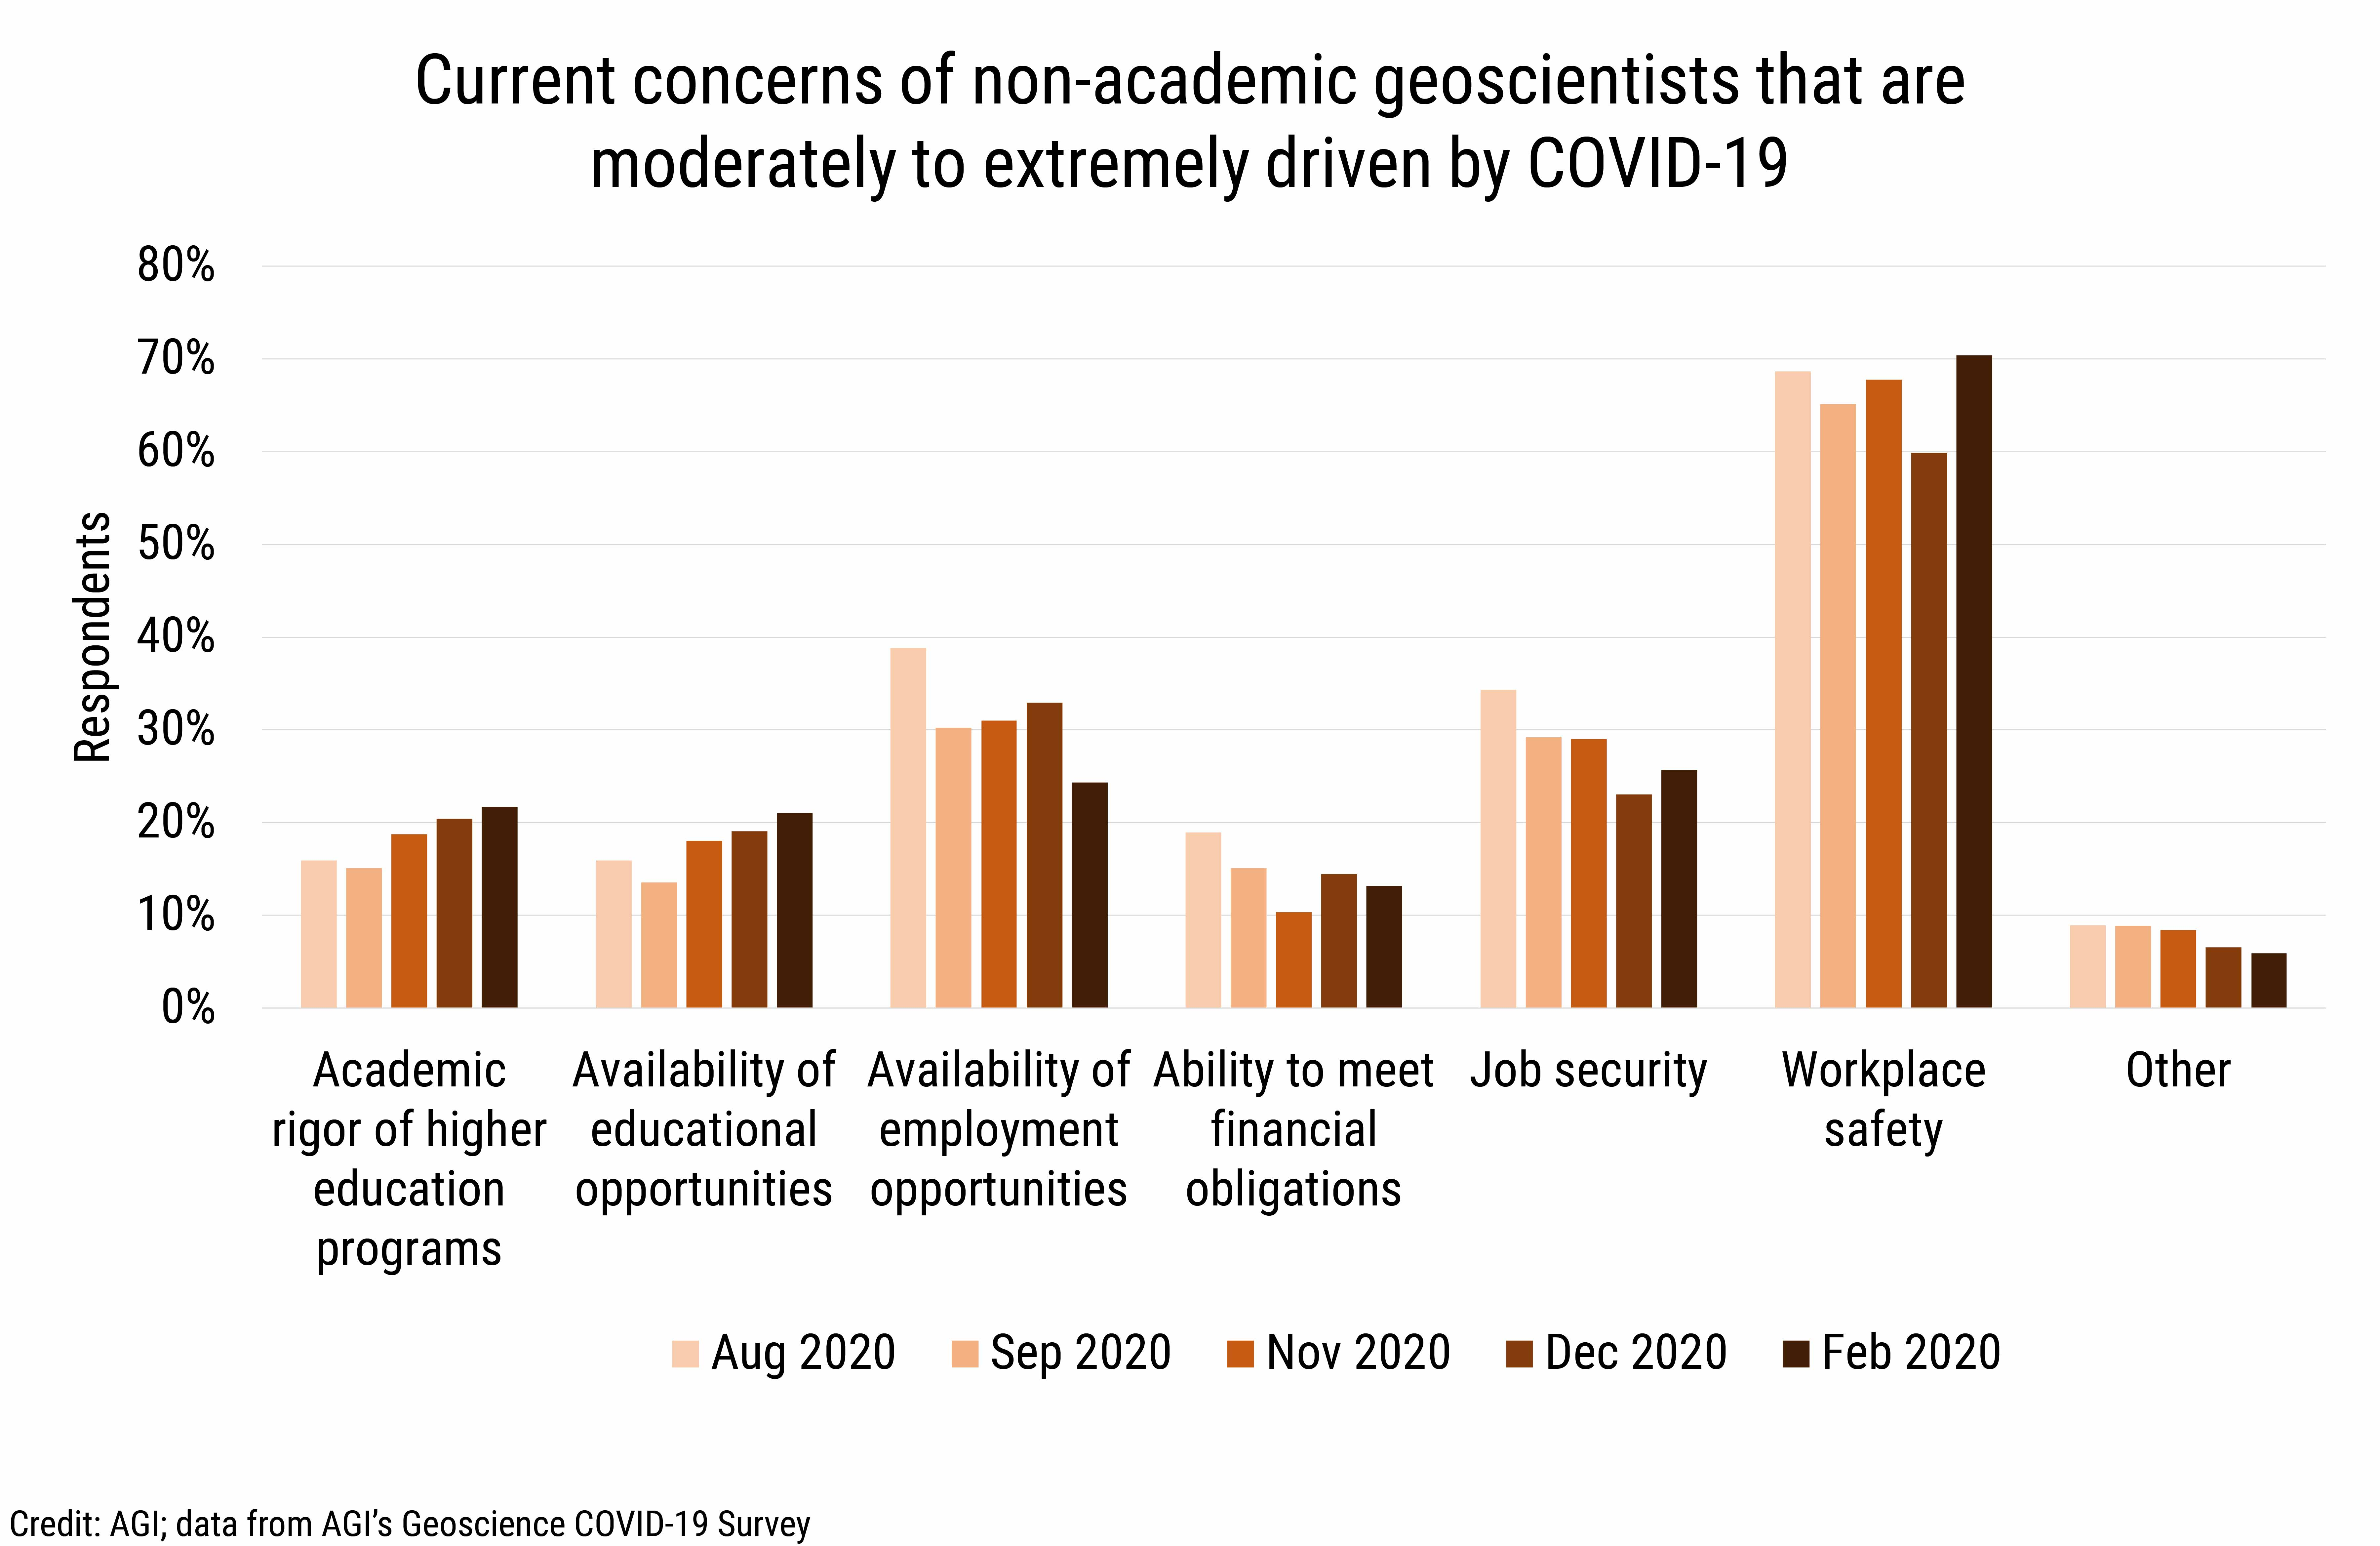 DB_2021-006 chart 04: Current concerns of non-academic geoscientists that are moderately to extremely driven by COVID-19 (Credit: AGI; data from AGI's Geoscience COVID-19 Survey)